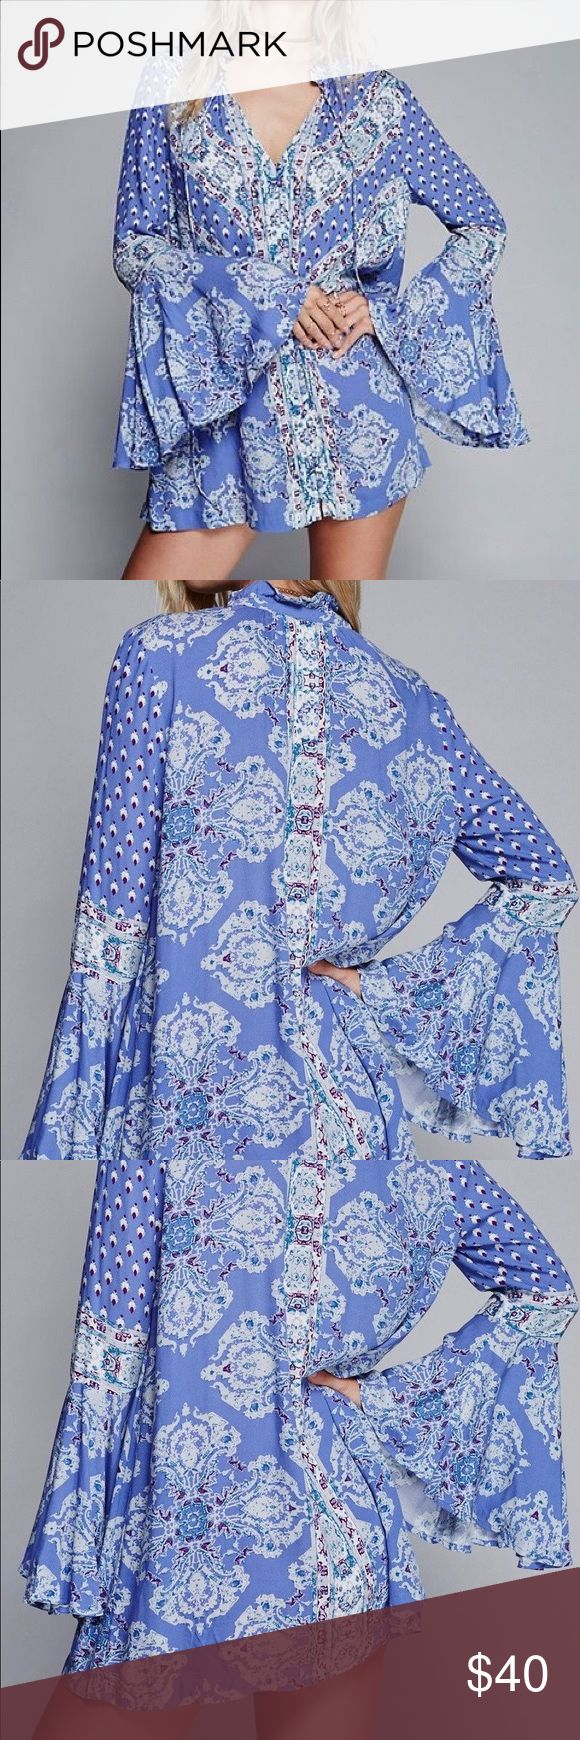 Magic Mystery Dress Printed mini with v neckline and ruffled collar. Long sleeves with flared cuffs. By Free People. This is a new dress just don't have tags. Color: Sky Blue  Fabric: Rayon  Style Number: Ob539806_S Free People Dresses Mini